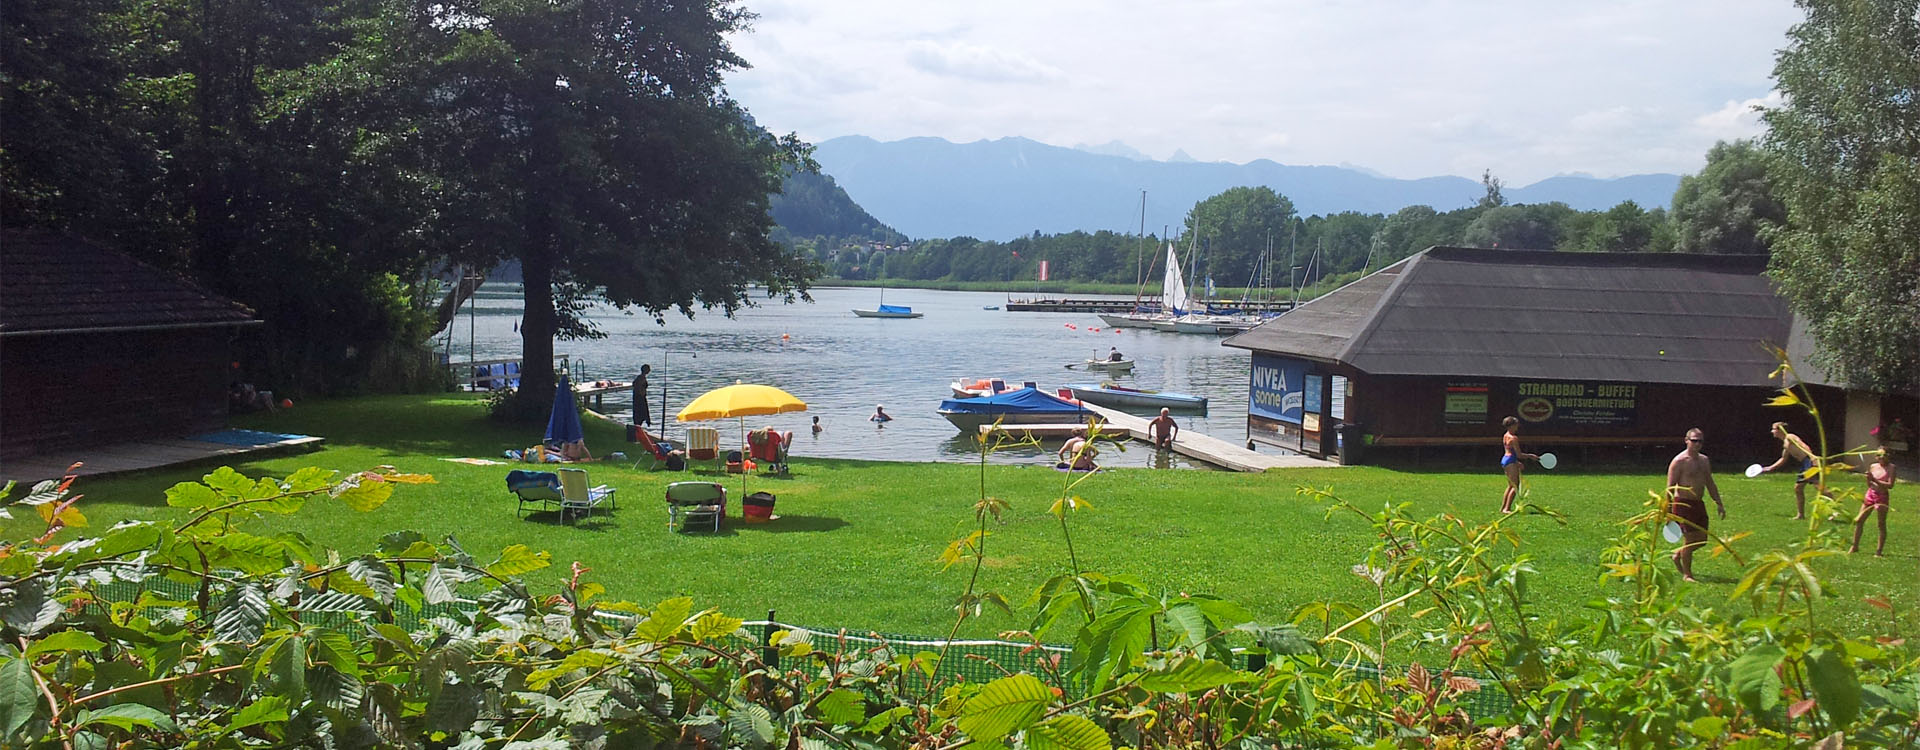 Wohnung mit Seezugang am Ossiacher See